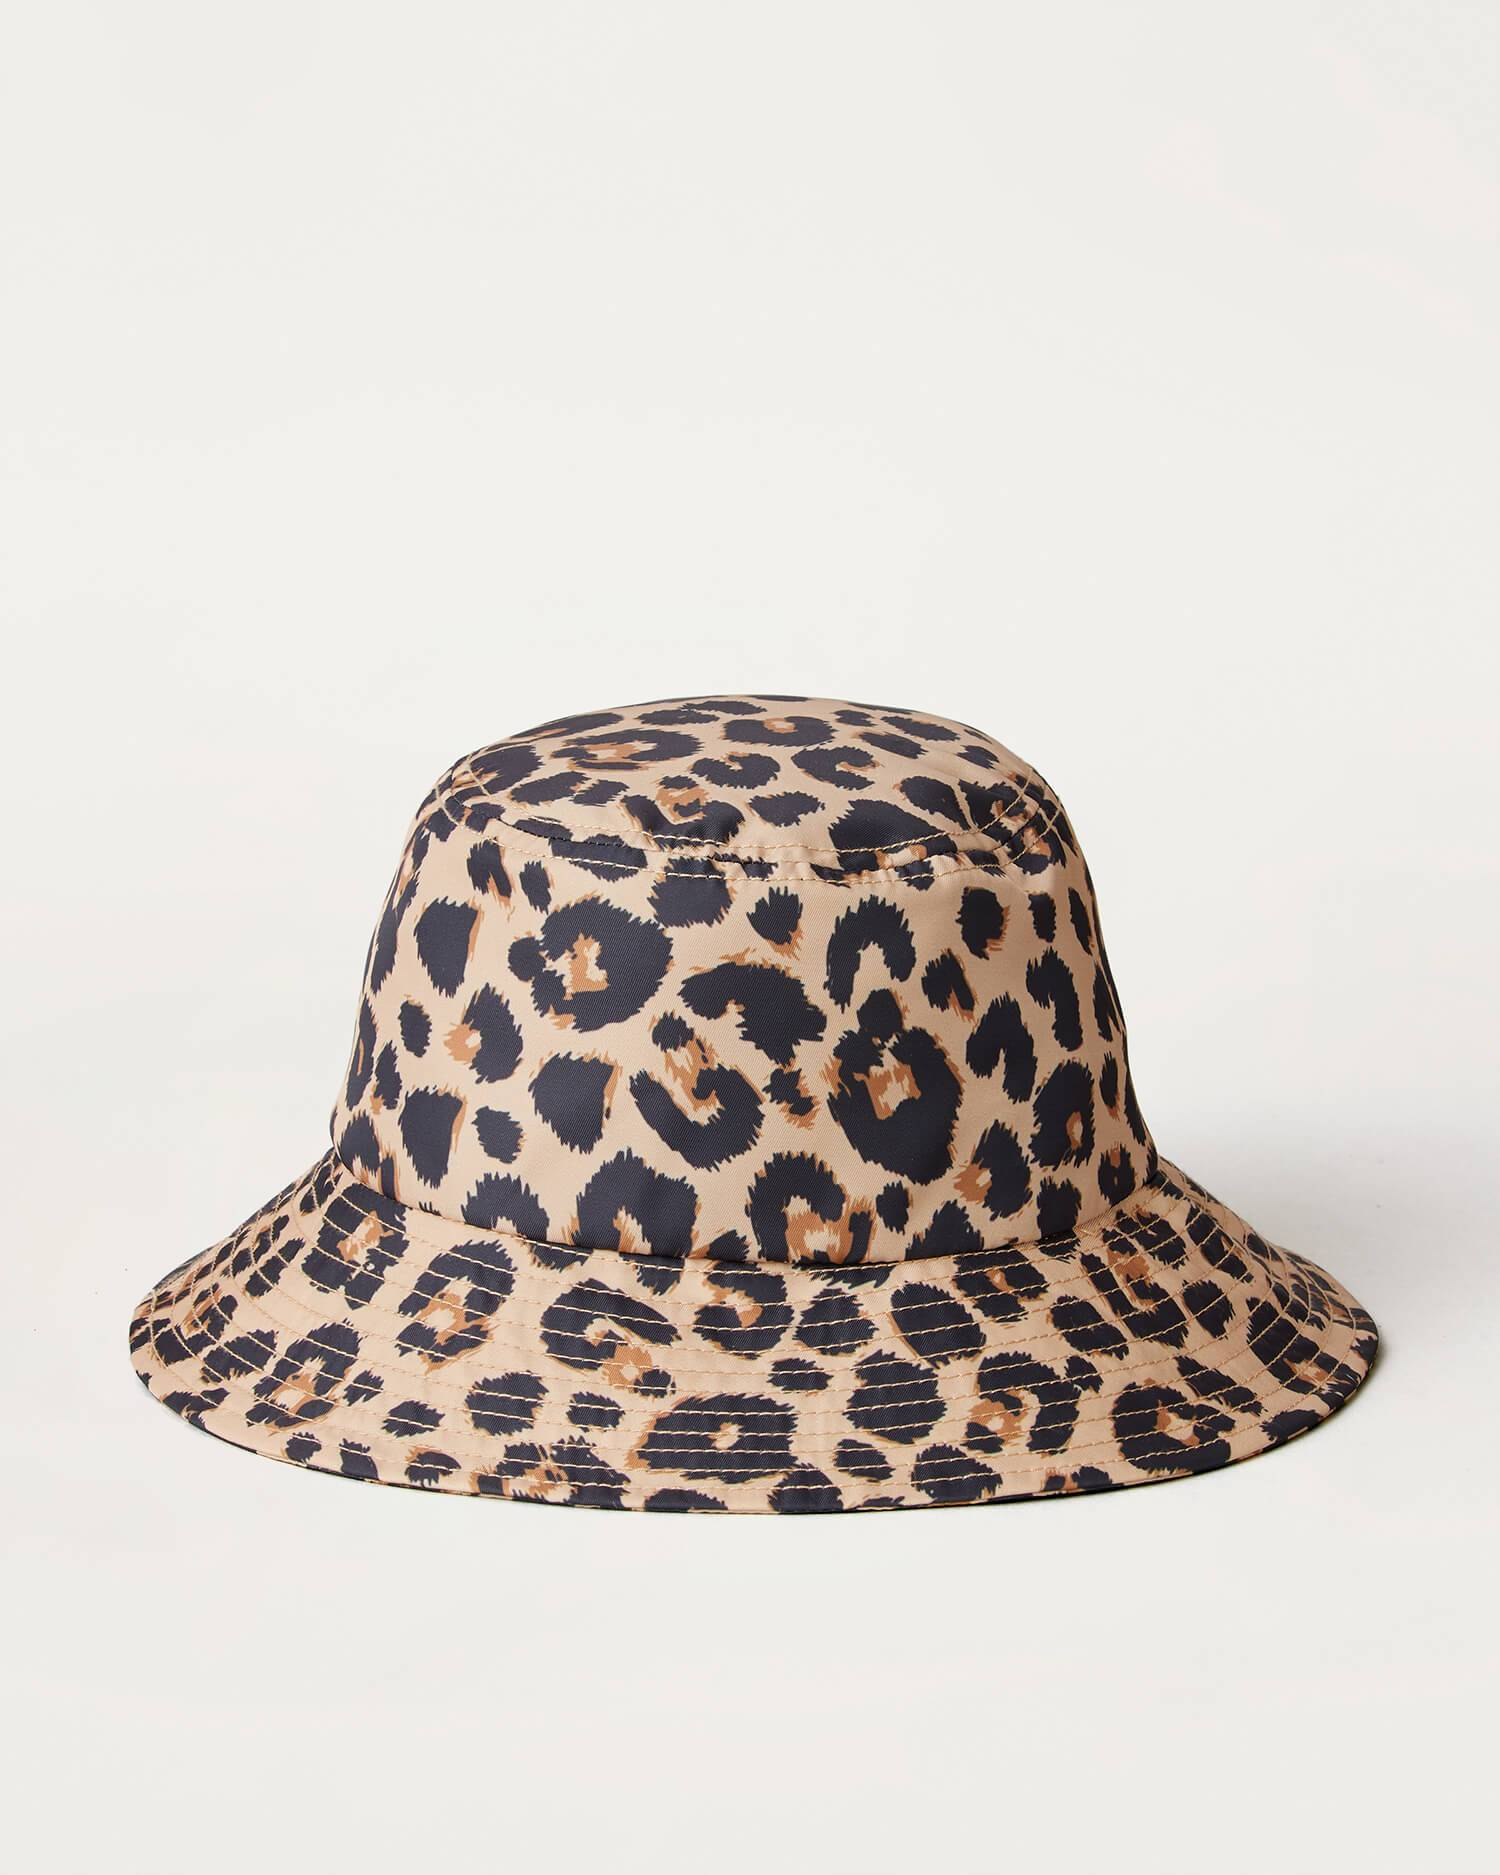 color:Leopard